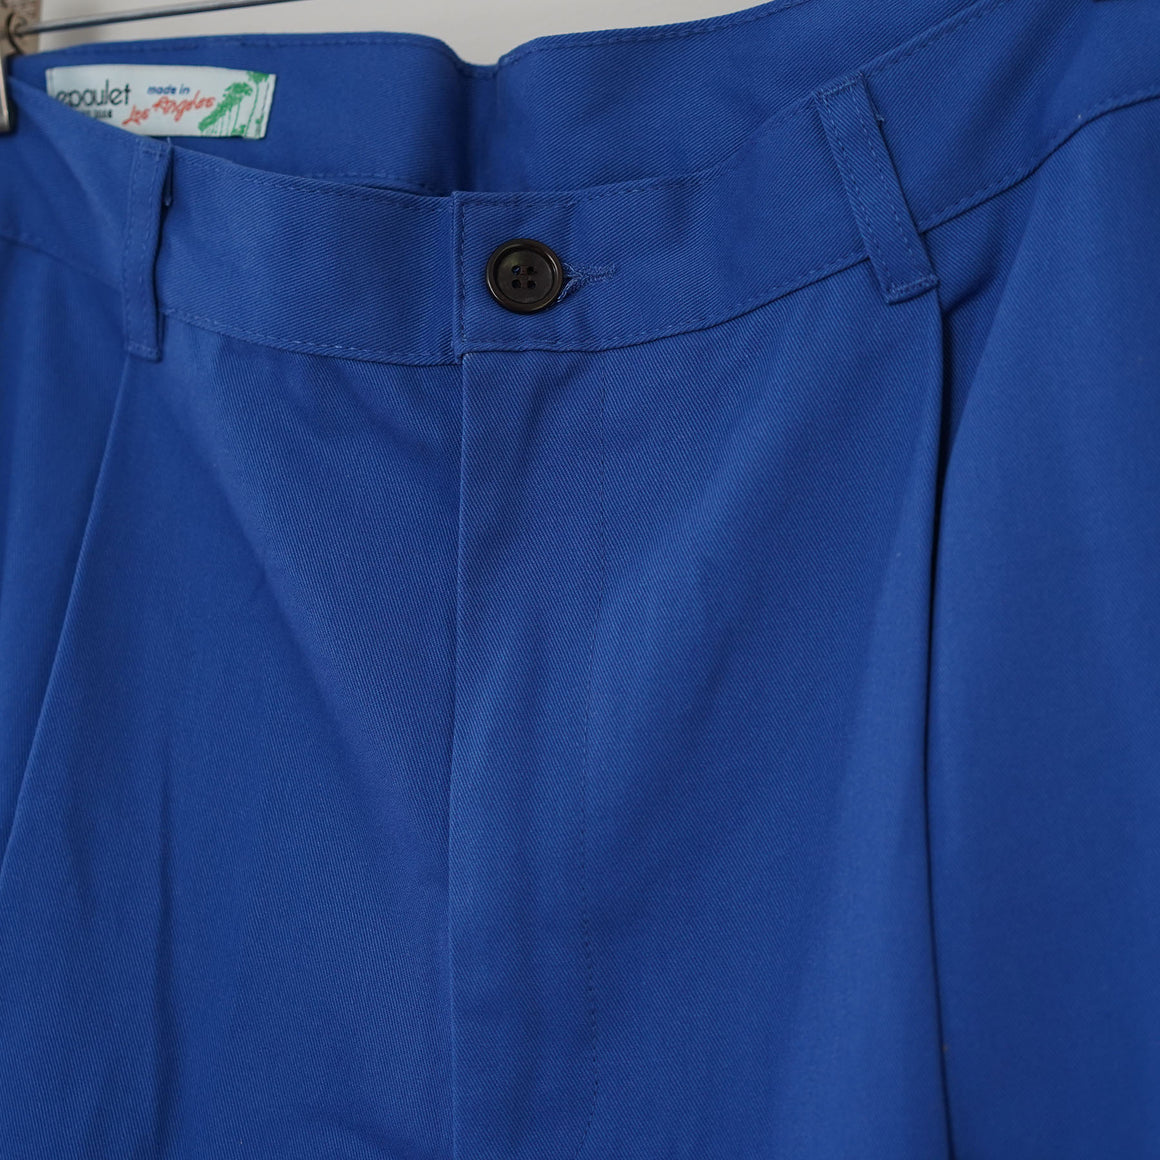 Sample Sale: EZ Pant in Royal Blue Twill Size 33